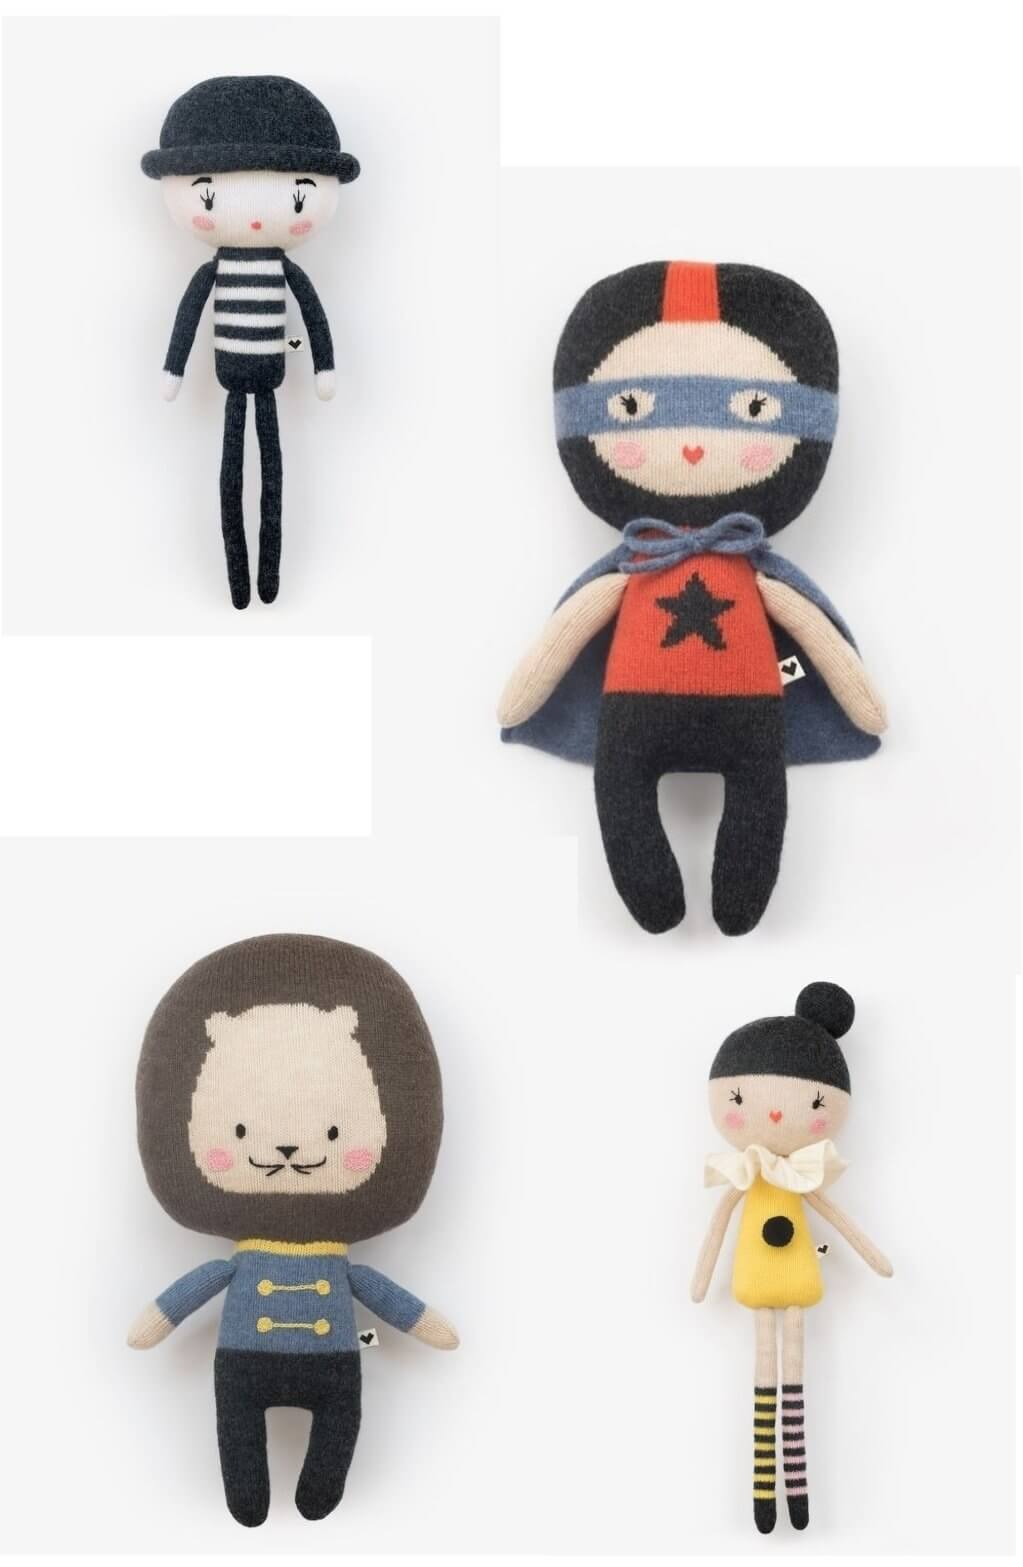 lauvely - knitted friends